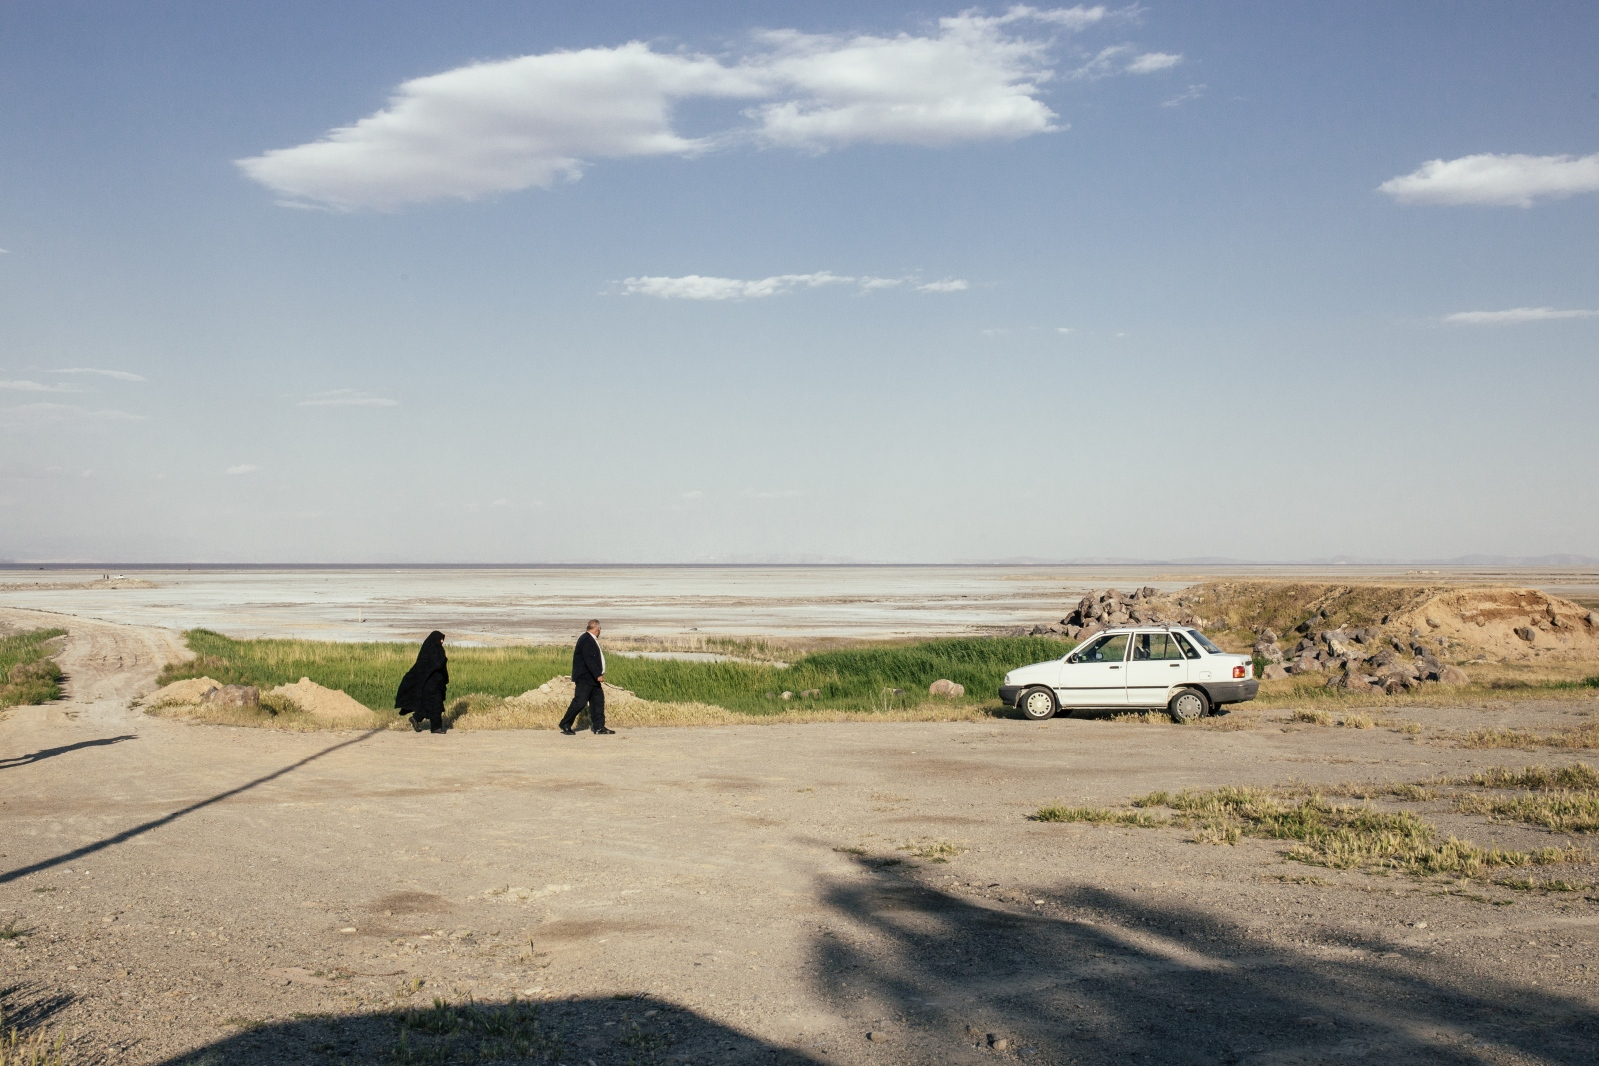 Golmankhaneh port was once the main port on Lake Urmia with coastal beaches and villas ready to welcome travelers. Today it's only a desolate outpost with a salt crust Golmankhaneh port|West-Azerbaijan|Iran.2016